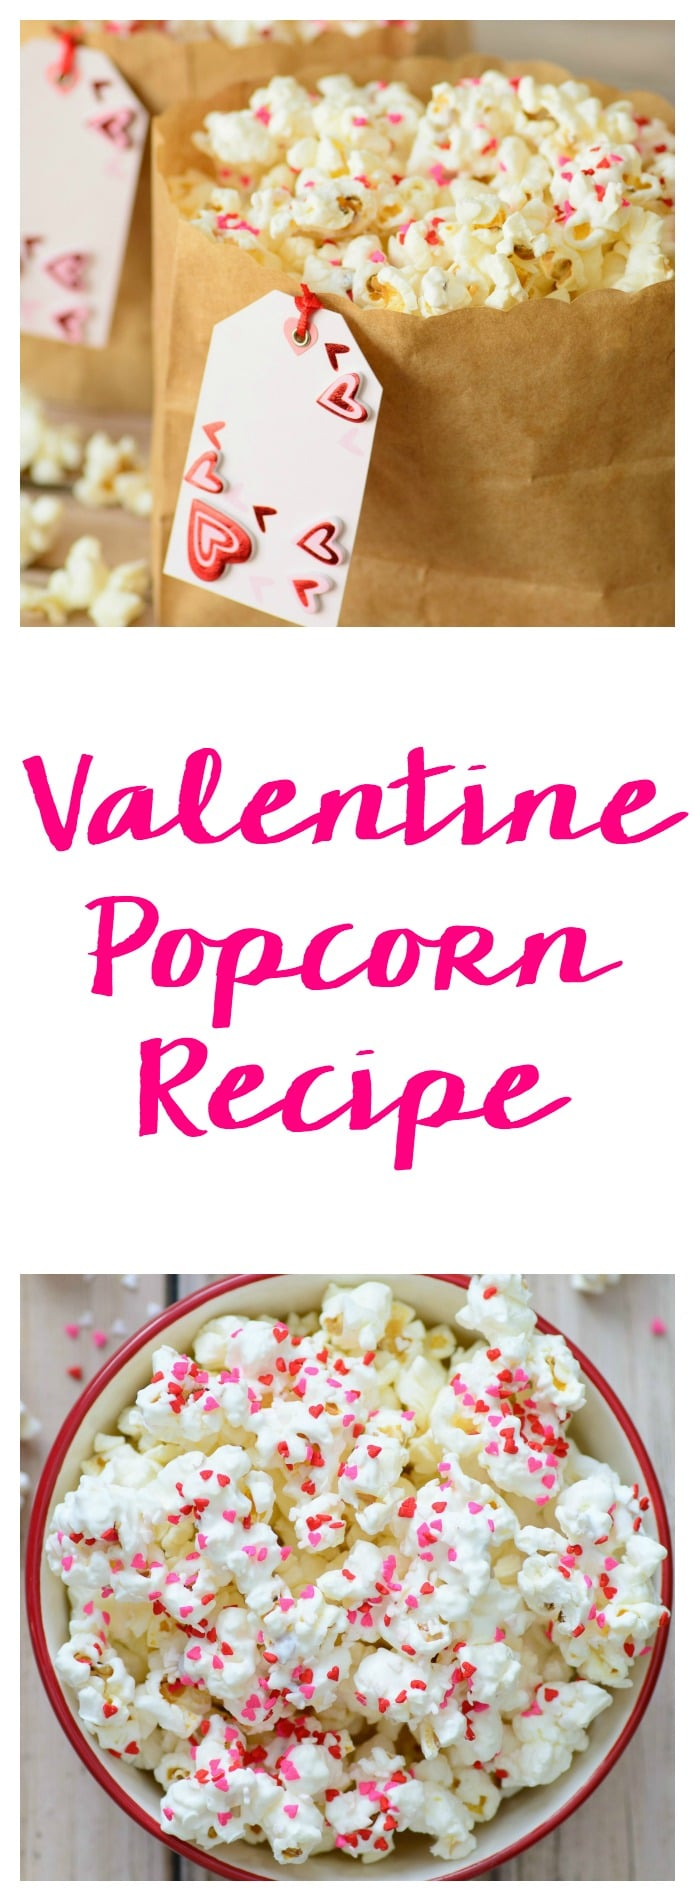 This Valentine's Day snack idea is the perfect combination of crunchy and sweet. This Confetti White Chocolate Popcorn recipe is so cute and easy which makes it a no-brainer for any Valentine's Day snacks for school or snacks for kids! #valentinesday #valentinesdayfood #valentinesdayrecipes #valentinesdaysnacks #valentinesdaypopcorn #valentinesdaytreats #valentinesdayideas #snacks #snacksforkids #desserts #snackmix #valentine #snacksforschool